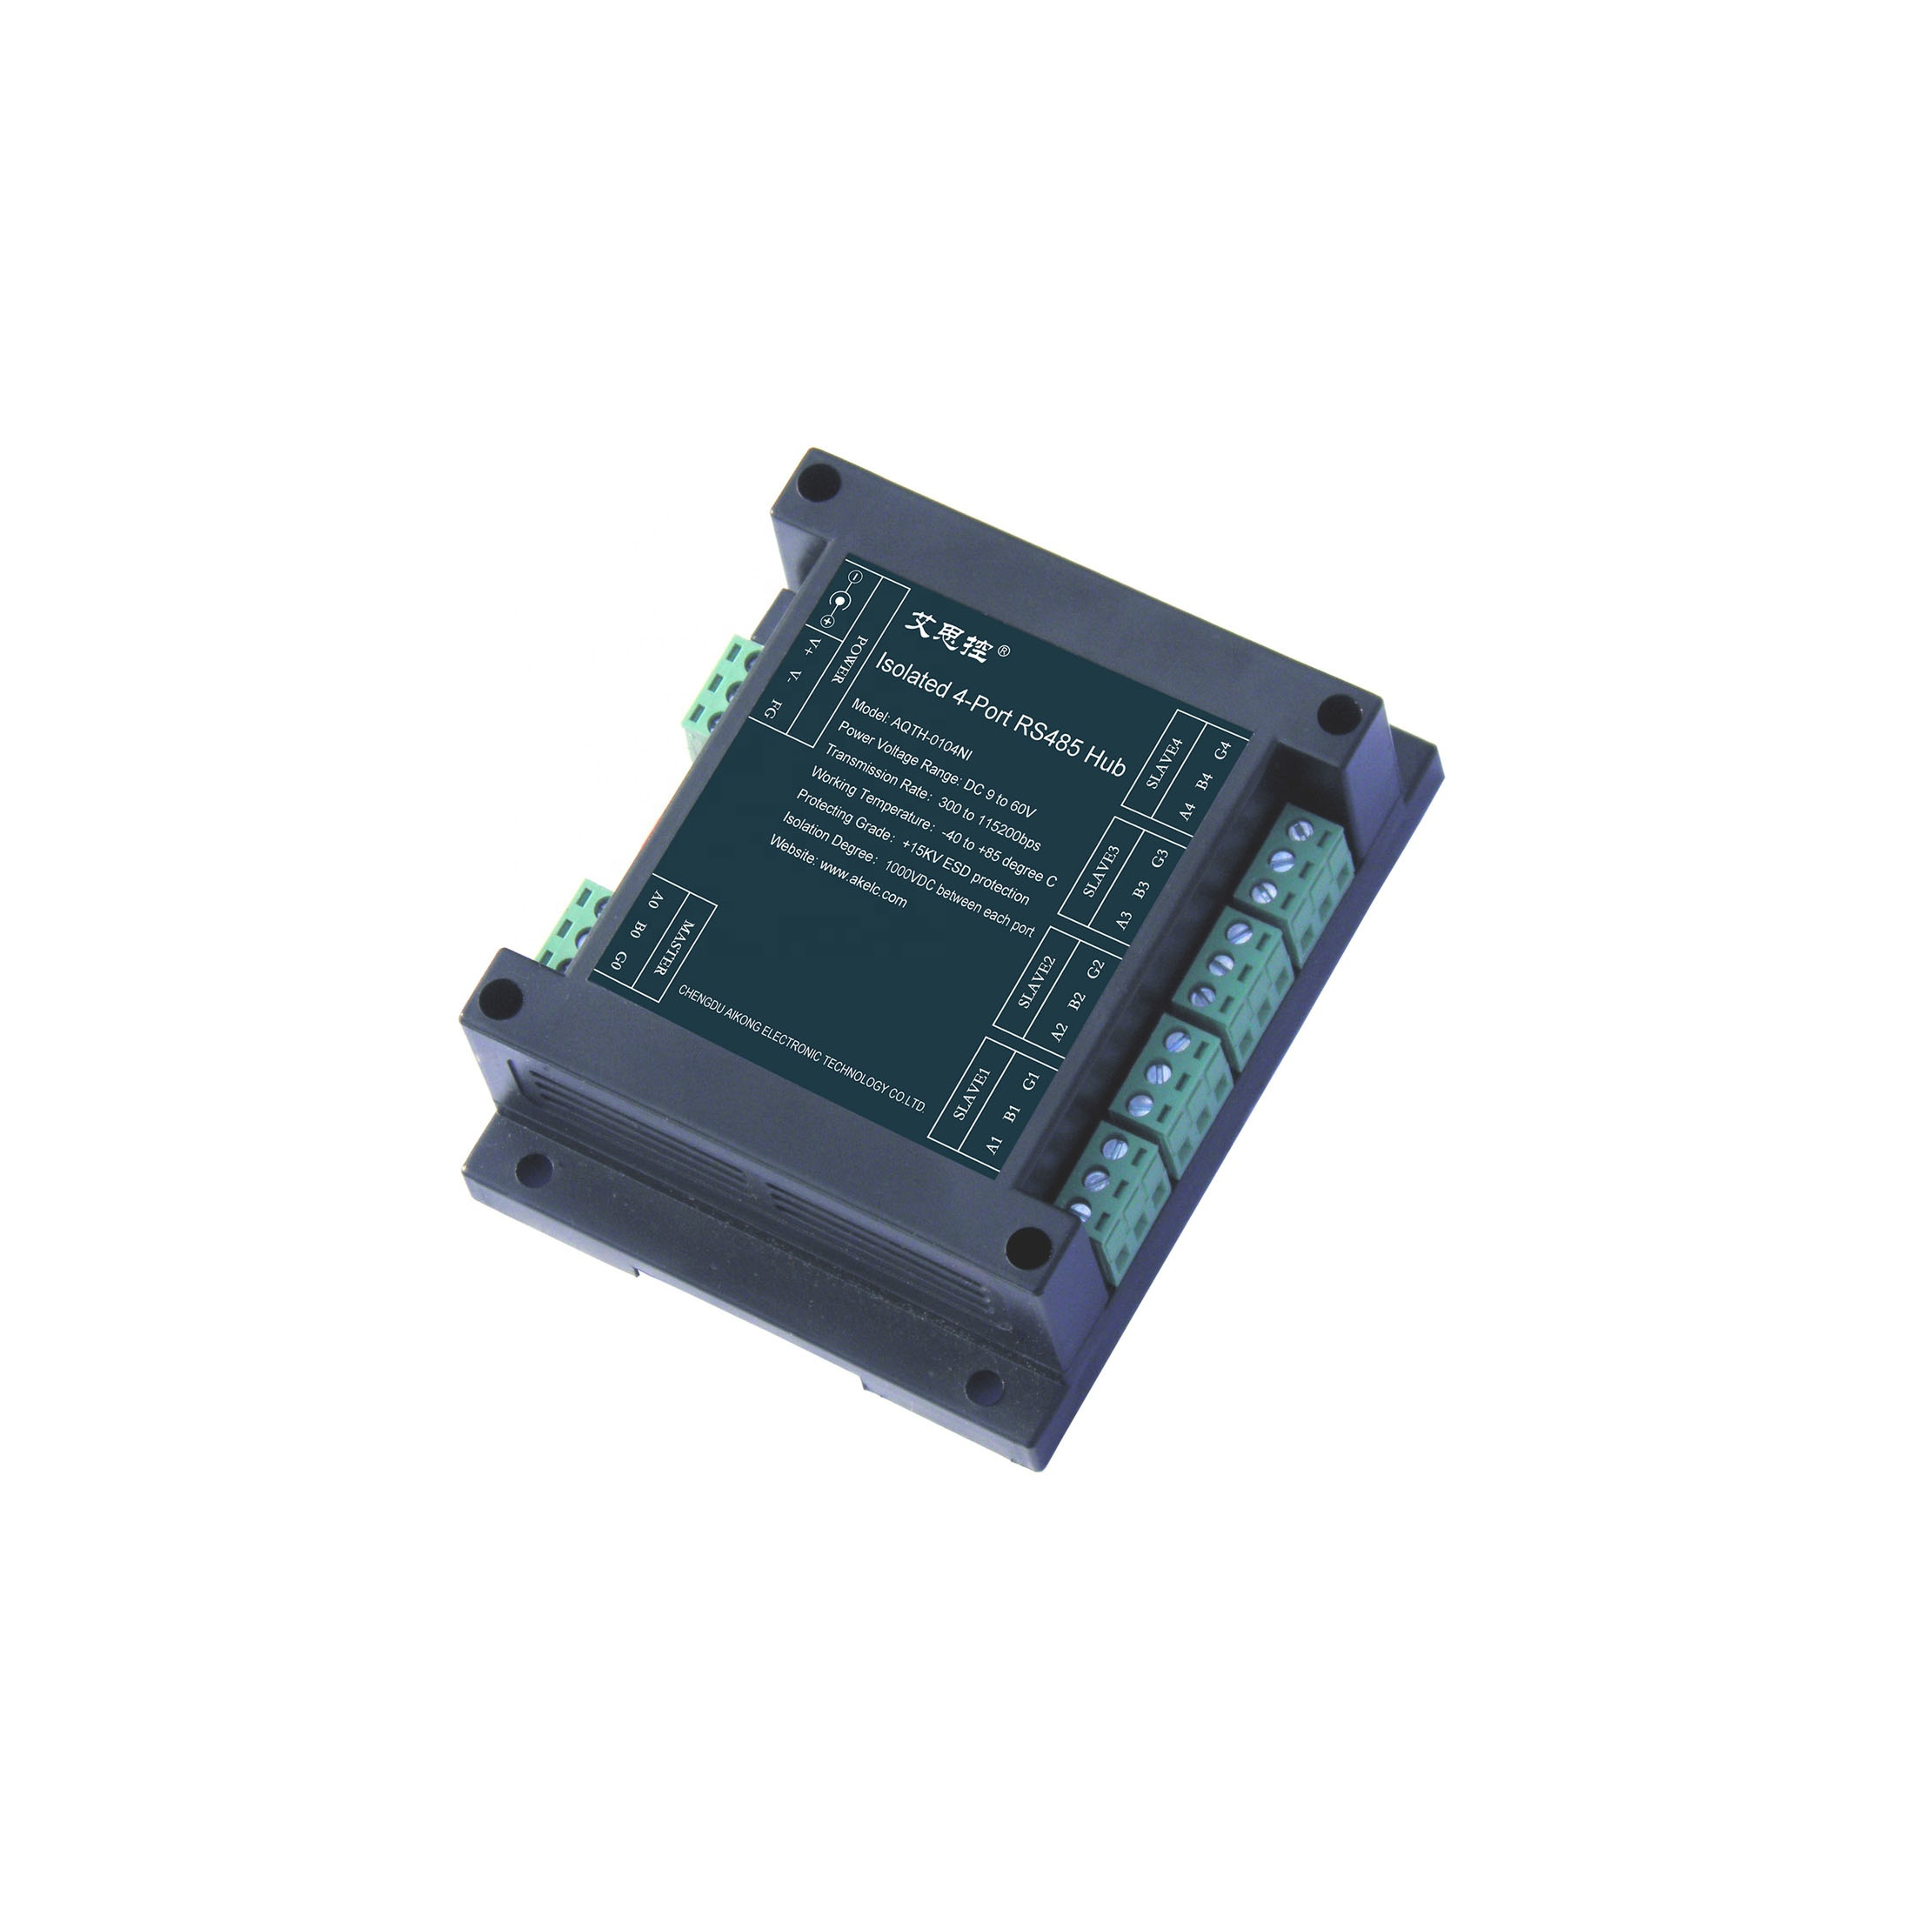 Wholesale Duplexer Communication Online Buy Best Rs485 Full Duplex Wiring Esd Protection Independent Driving Mode Isolated From The Power Supply Half Strongduplex